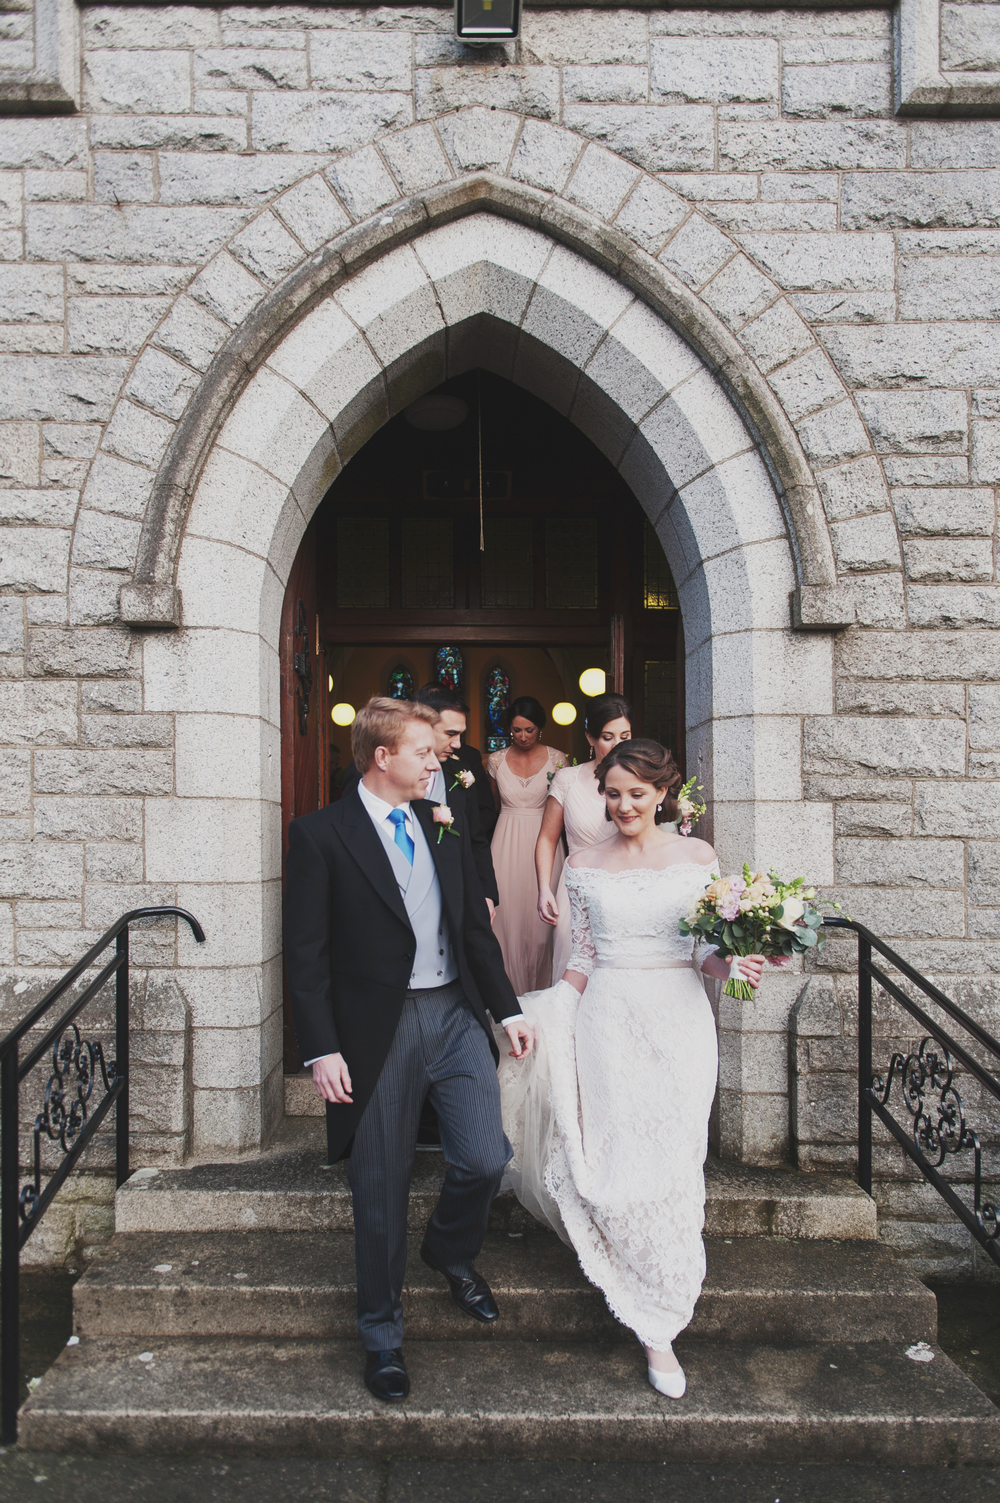 Carton_House_Wedding_Photography_Maynooth_Ireland_052.jpg